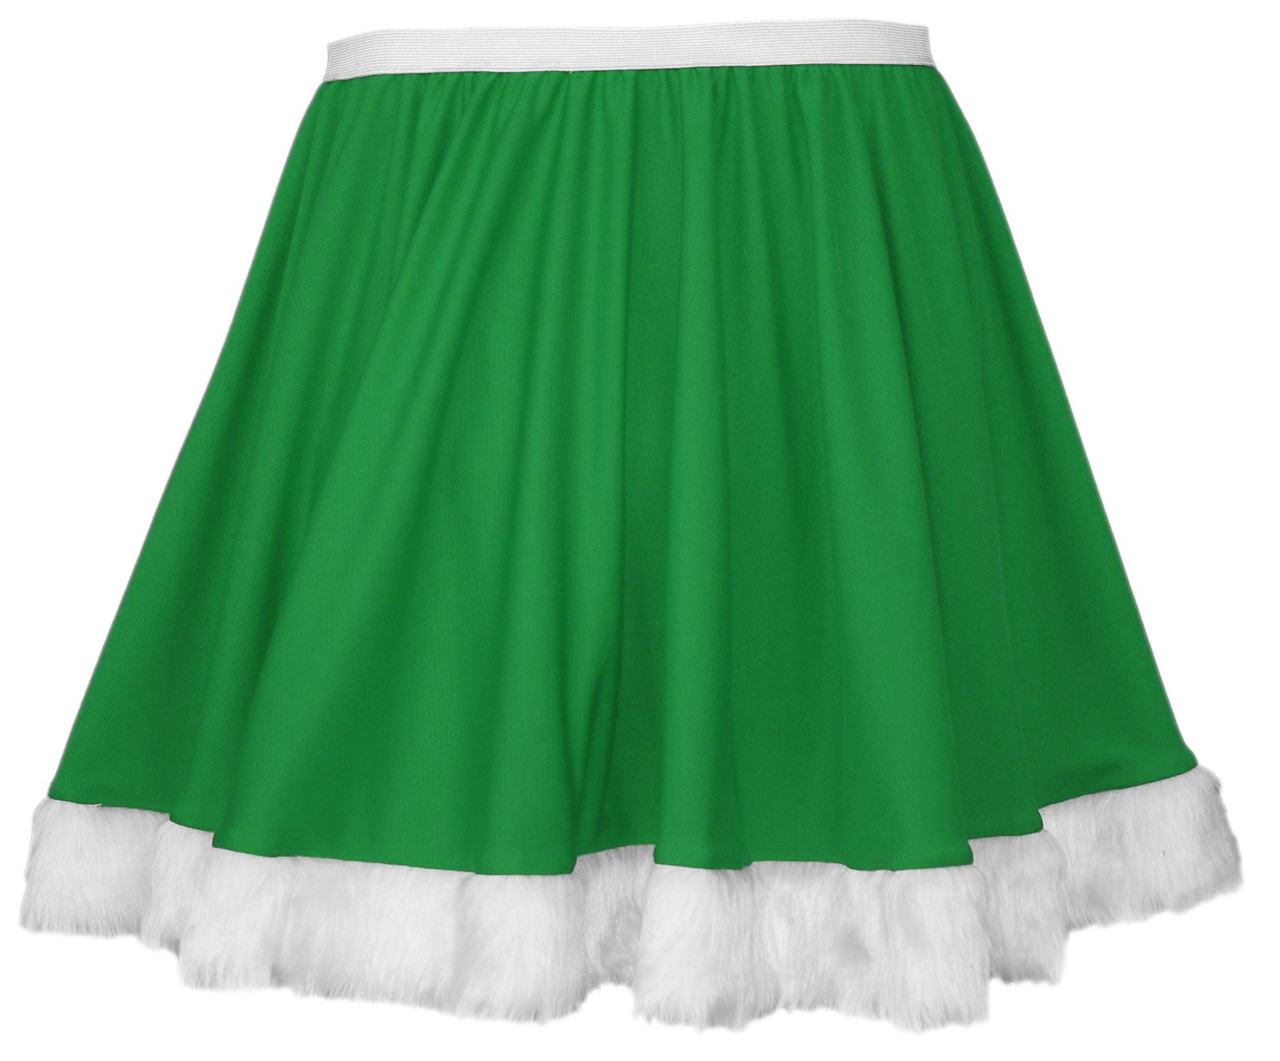 Ladies White Erskine Tartan Full Circle Skater Skirt With Elasticated Waistband